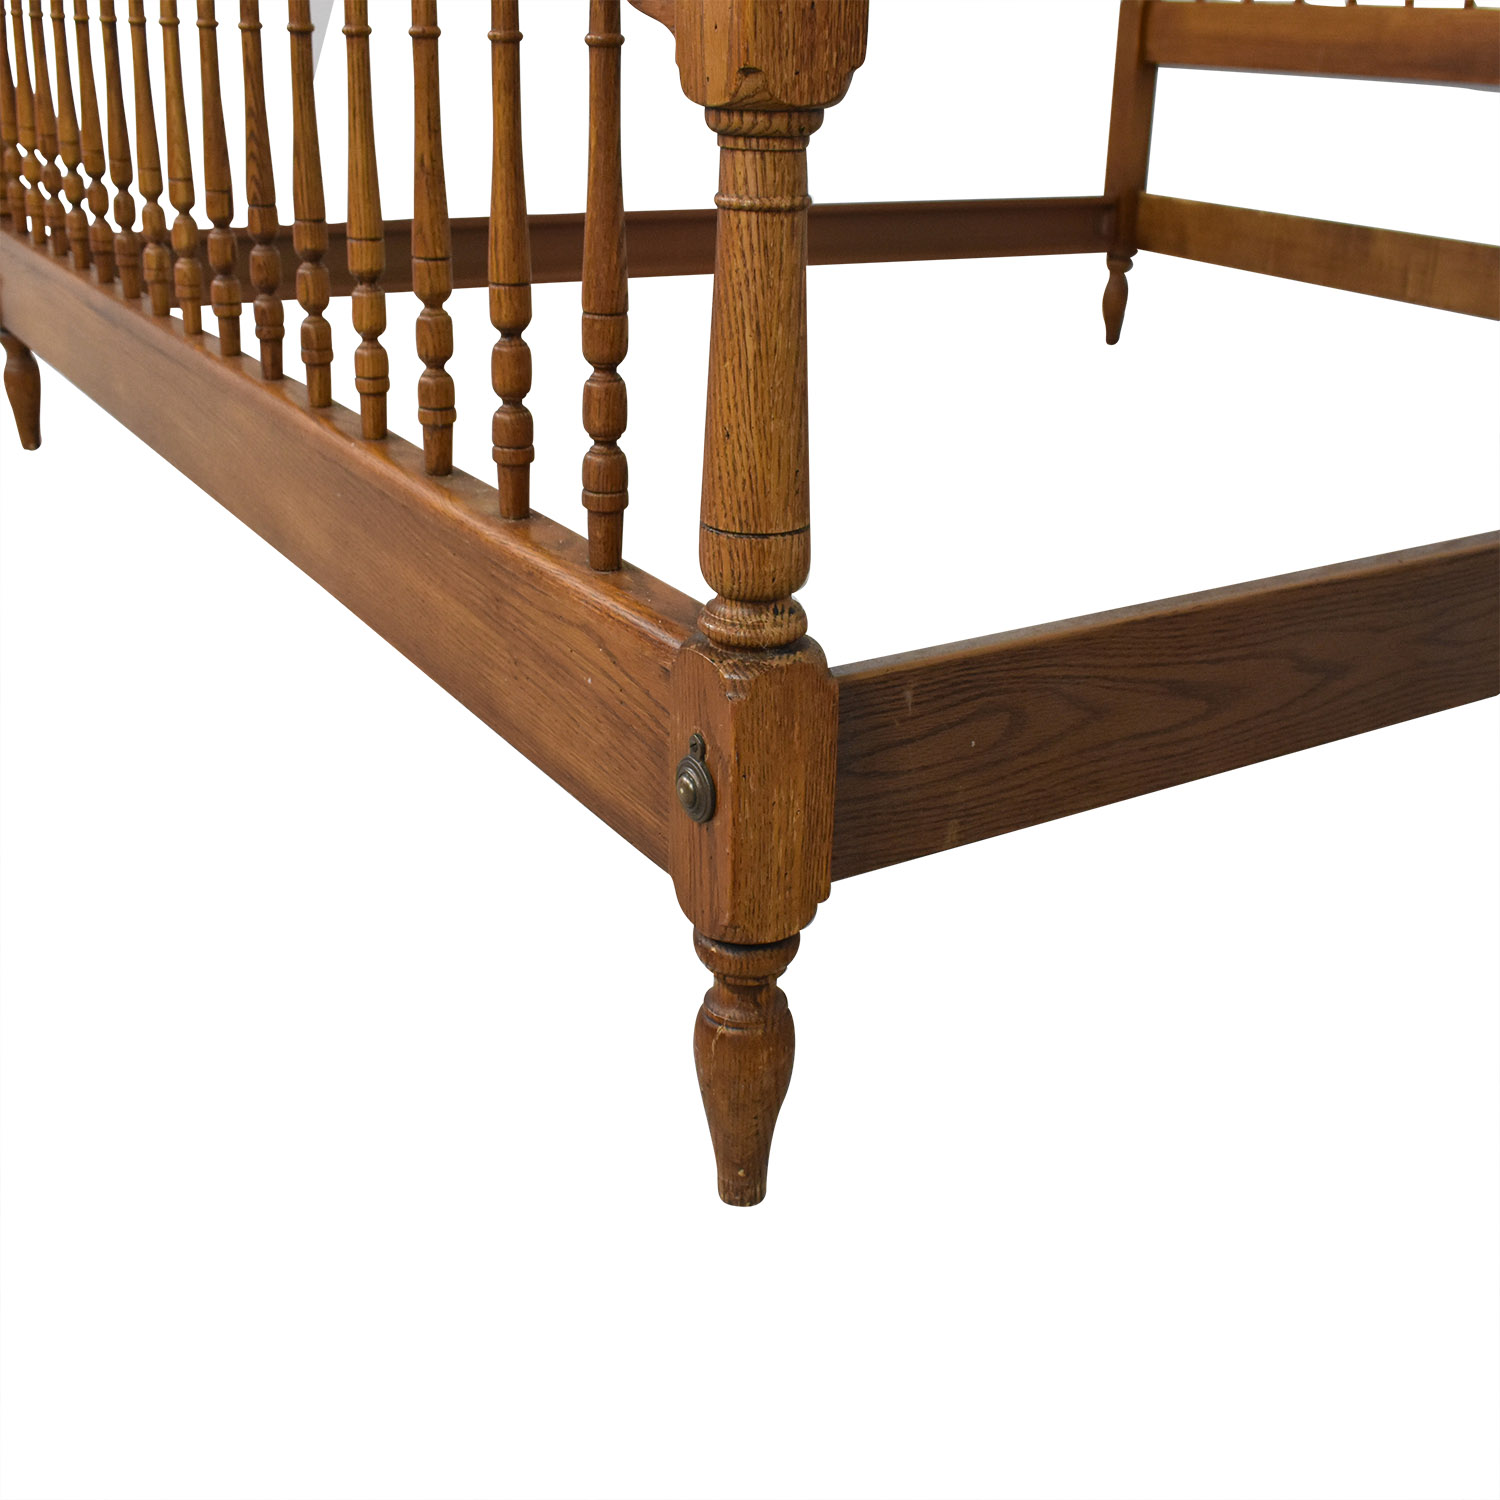 Knob Creek Knob Creek Spindle King Bed Frame nyc